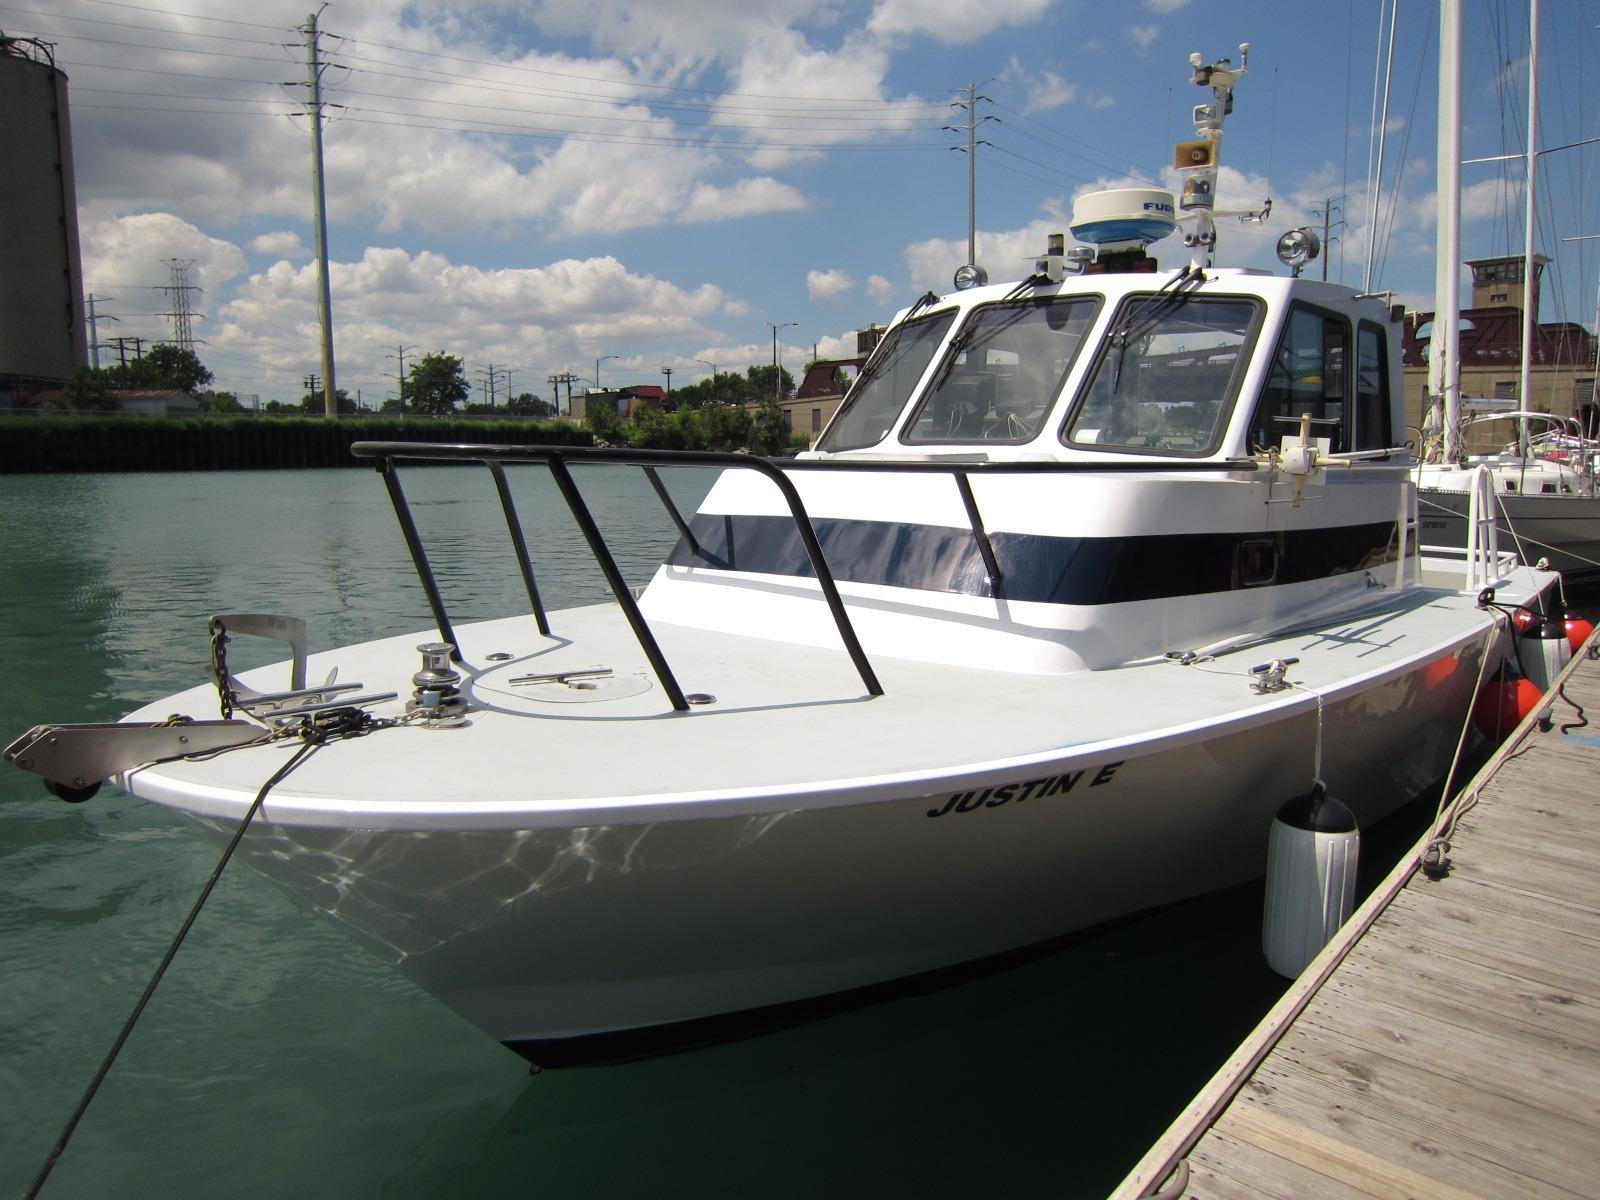 36 boston whaler 1990 bwc0a001h990 for sale in chicago  illinois  us